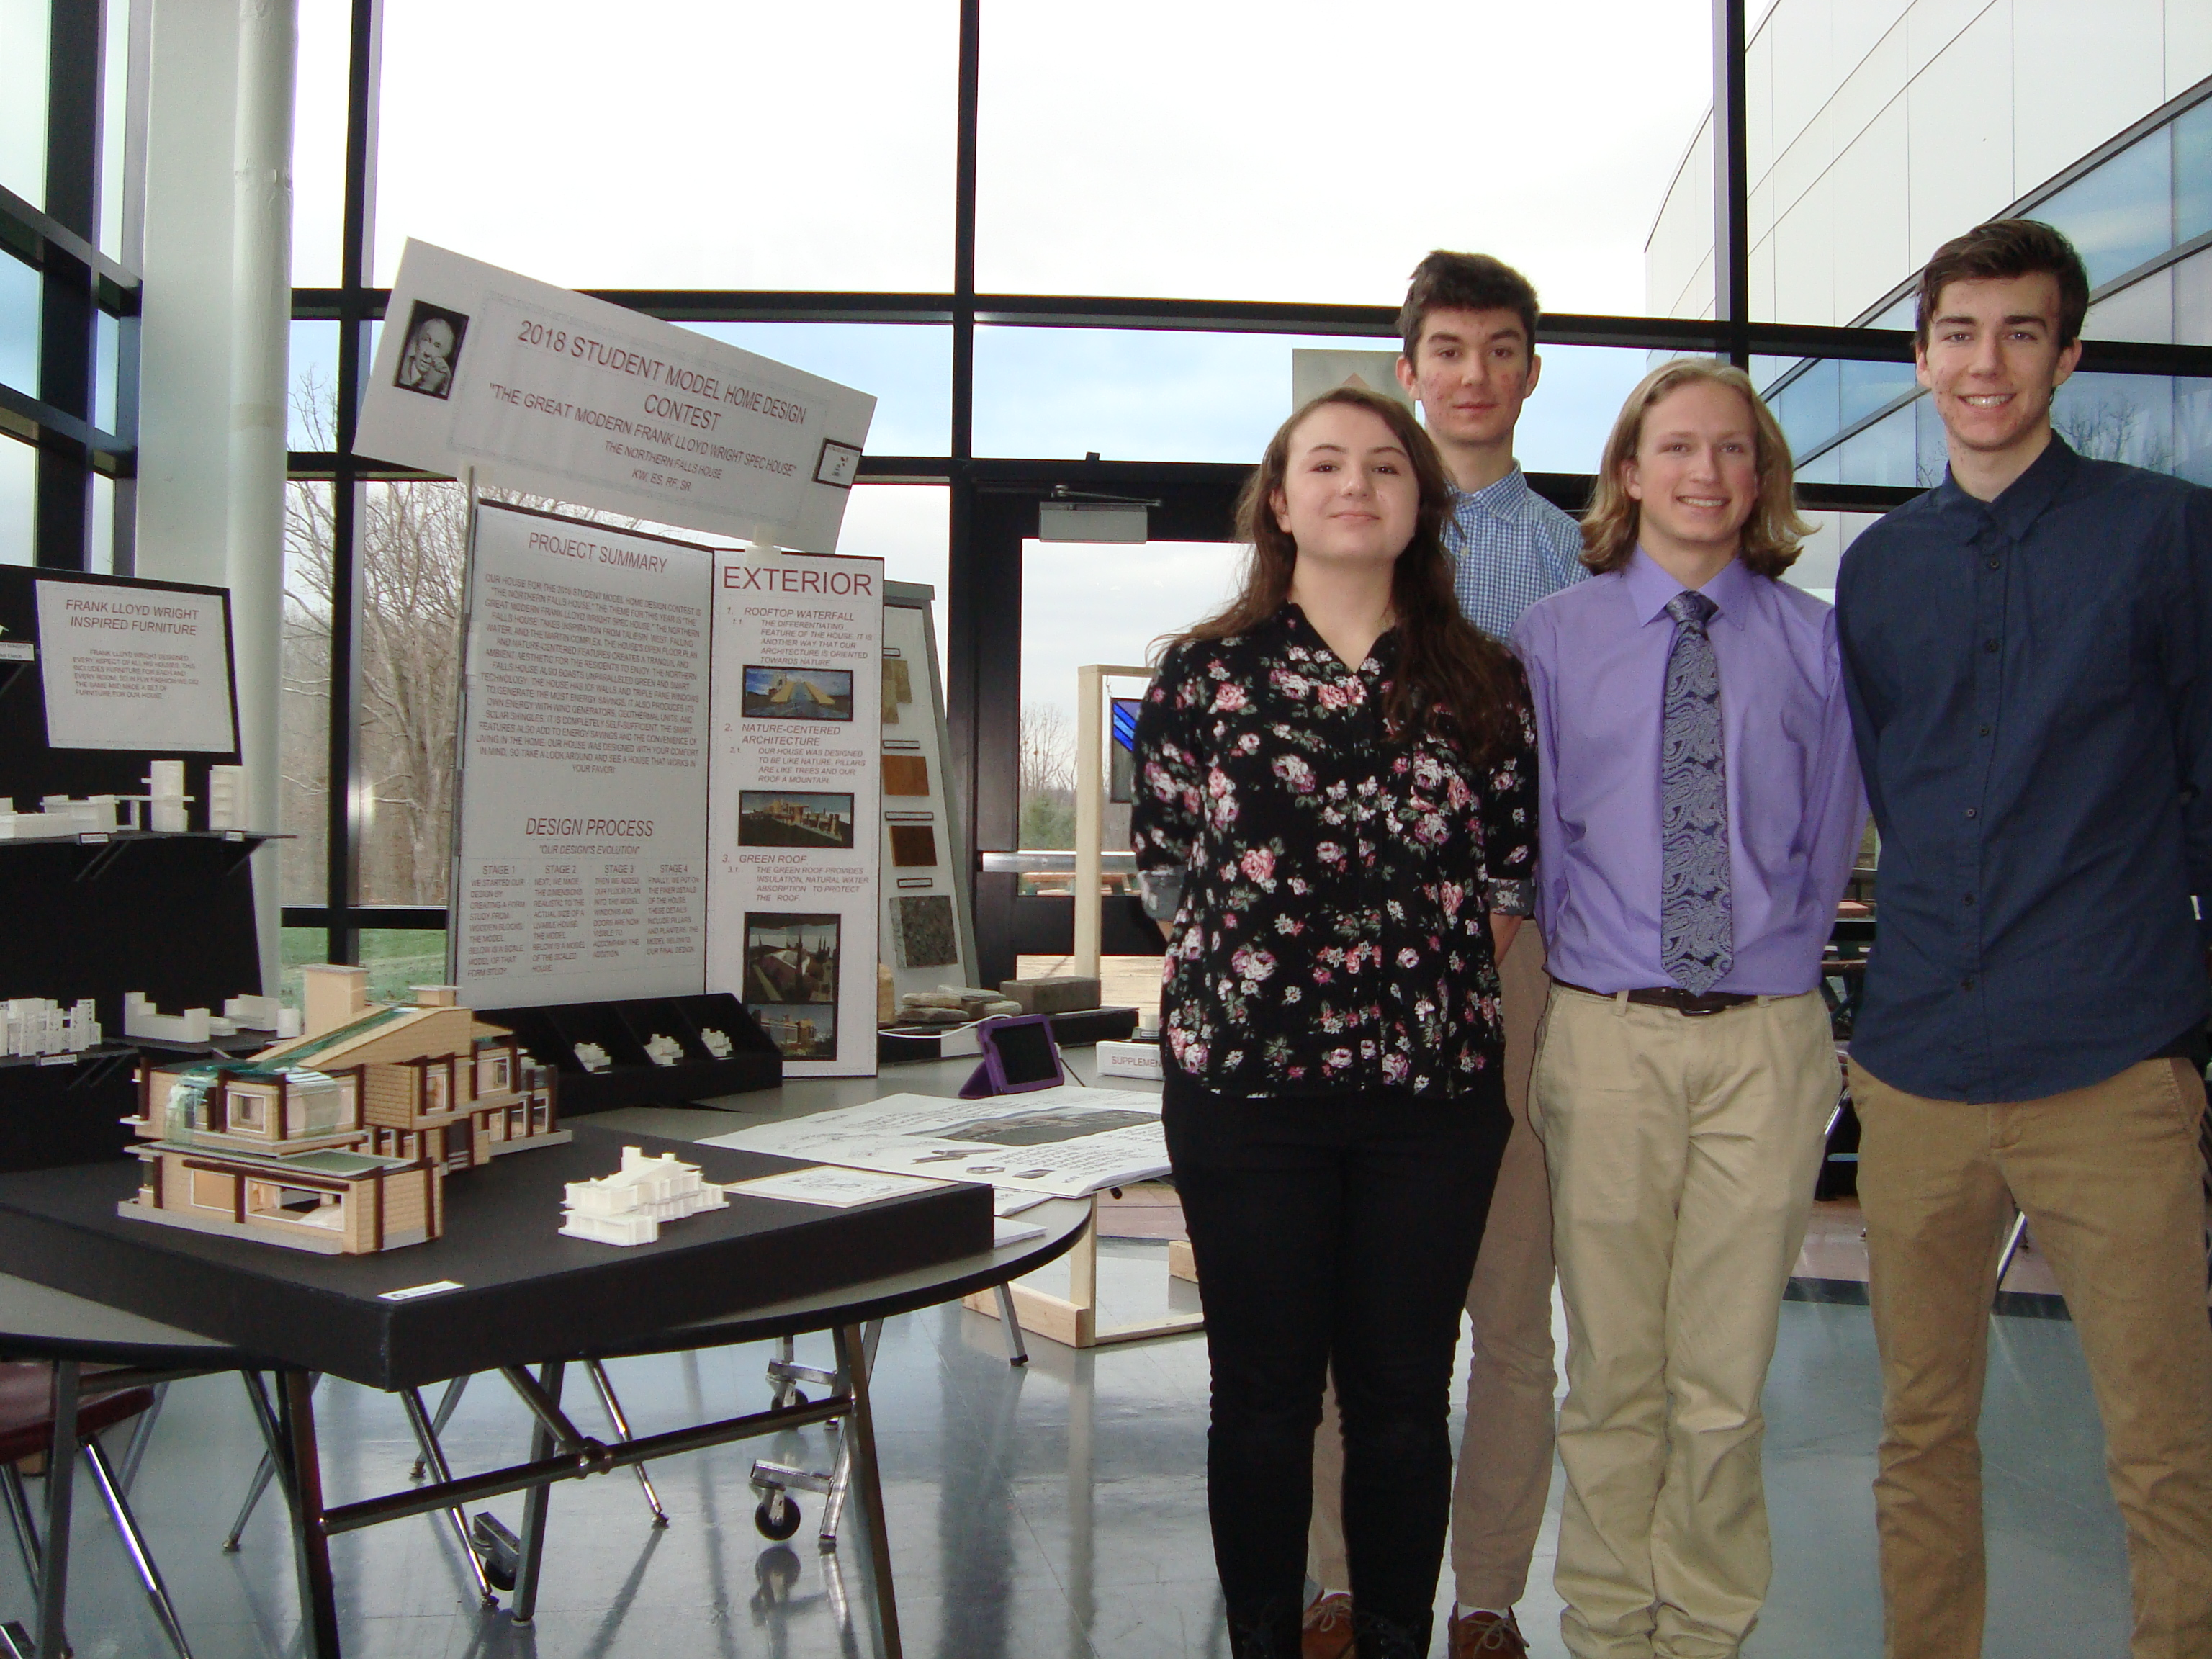 2018 Student Model Home Design Contest - 1st place team - Katie Willi, Robert Fulop, Ethan Simon, Scott Rennard of Westlake HS 1-27-18